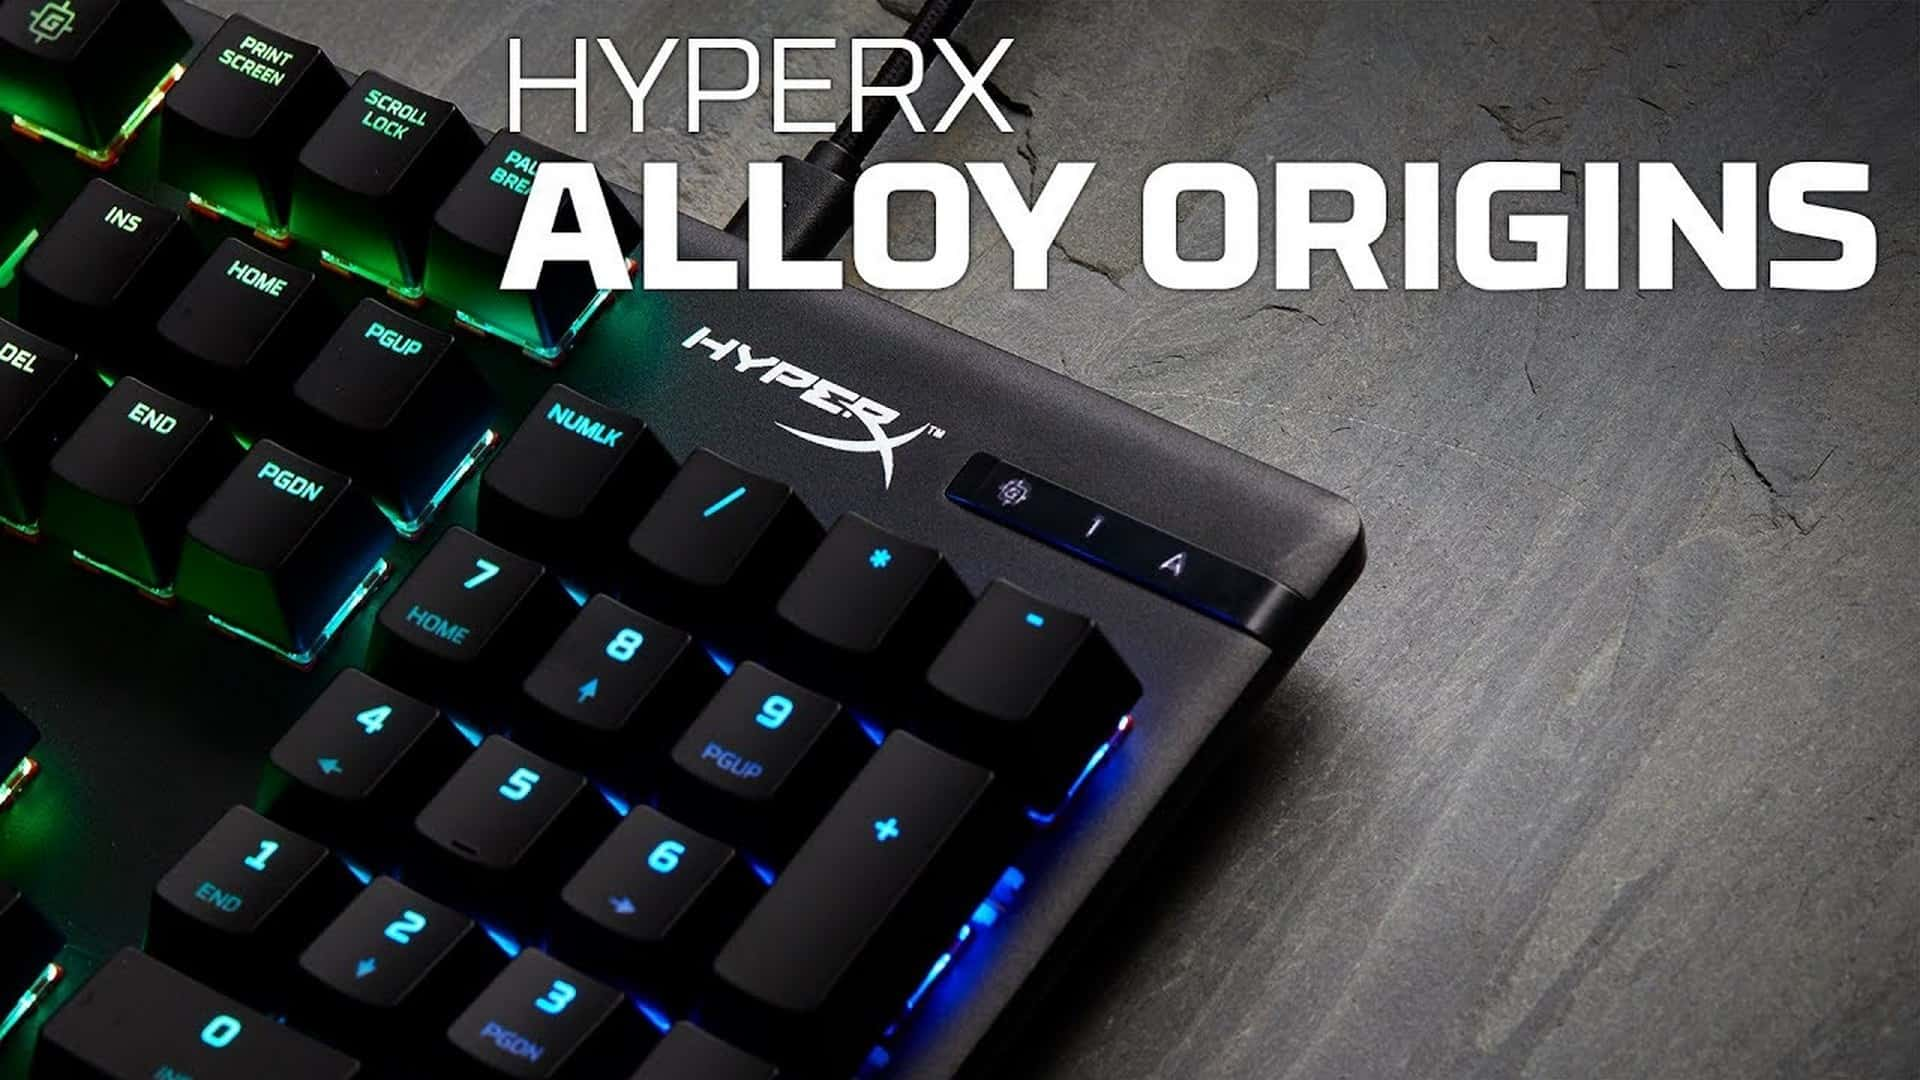 HyperX Branded Switches Now Shipping on Alloy Origins Mechanical Gaming Keyboard in Australia and New Zealand